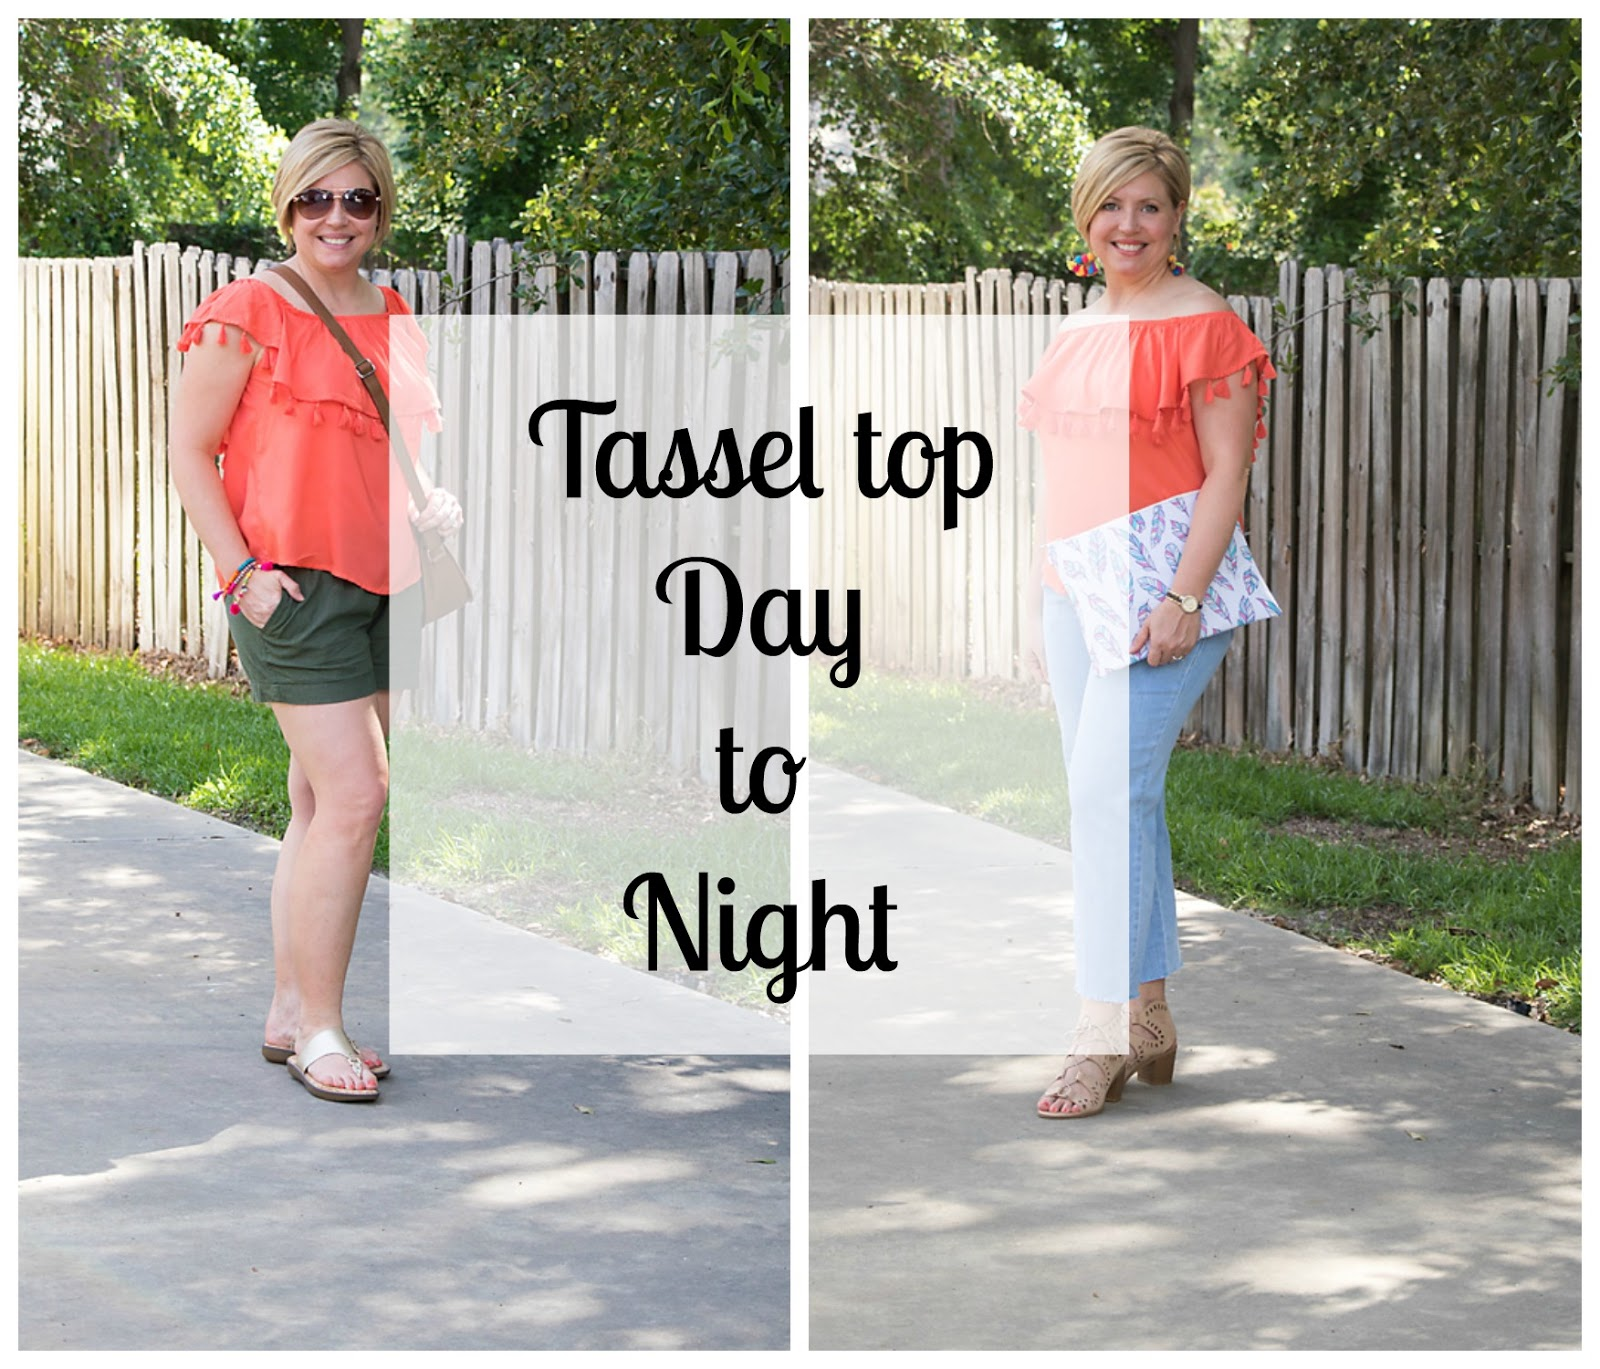 tassel top day to night